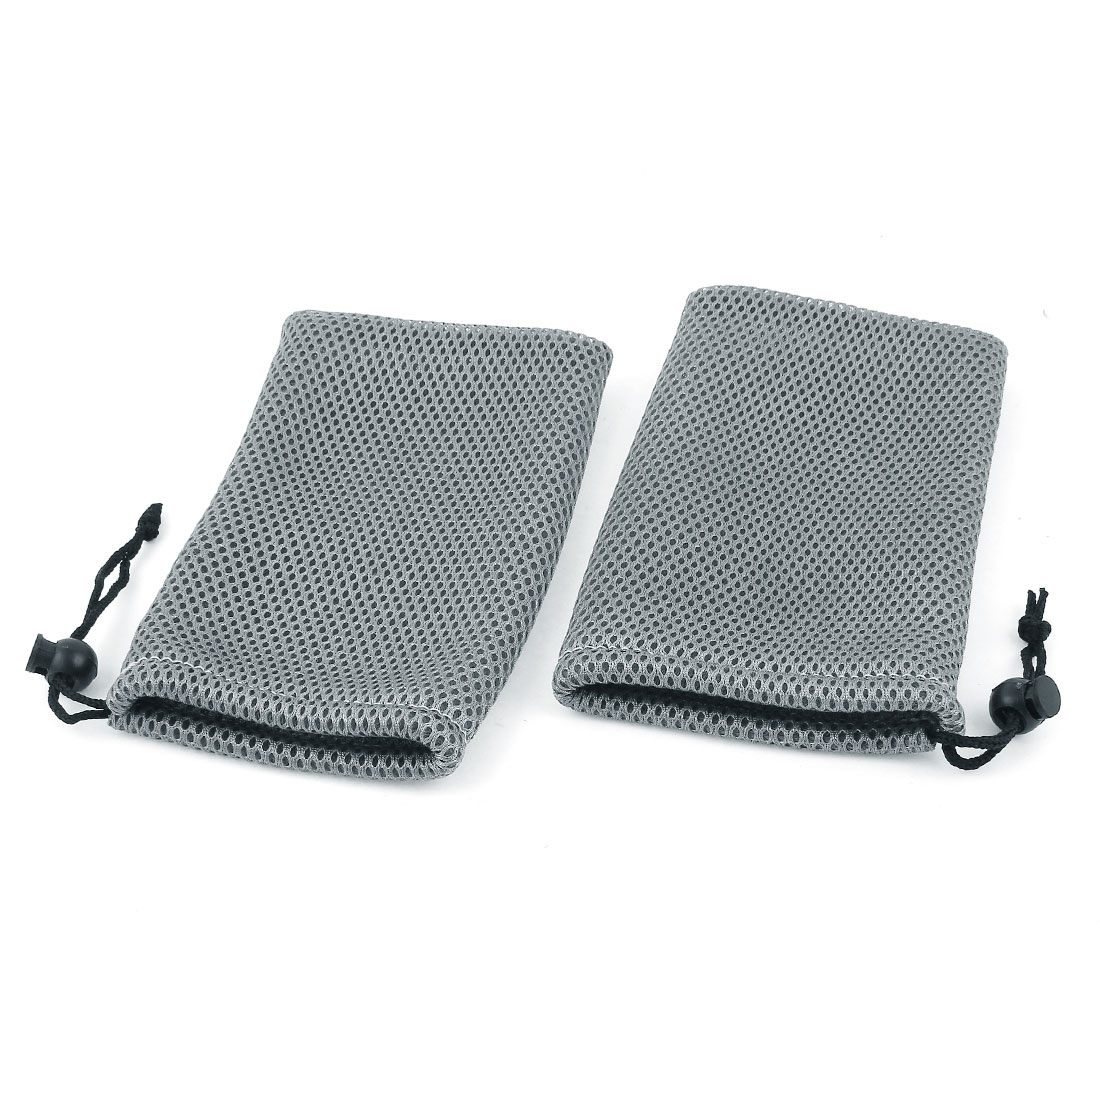 2 Pieces Dark Gray Mesh Mp3 Mp4 Cell Phone Mobilephone Pouch Bag